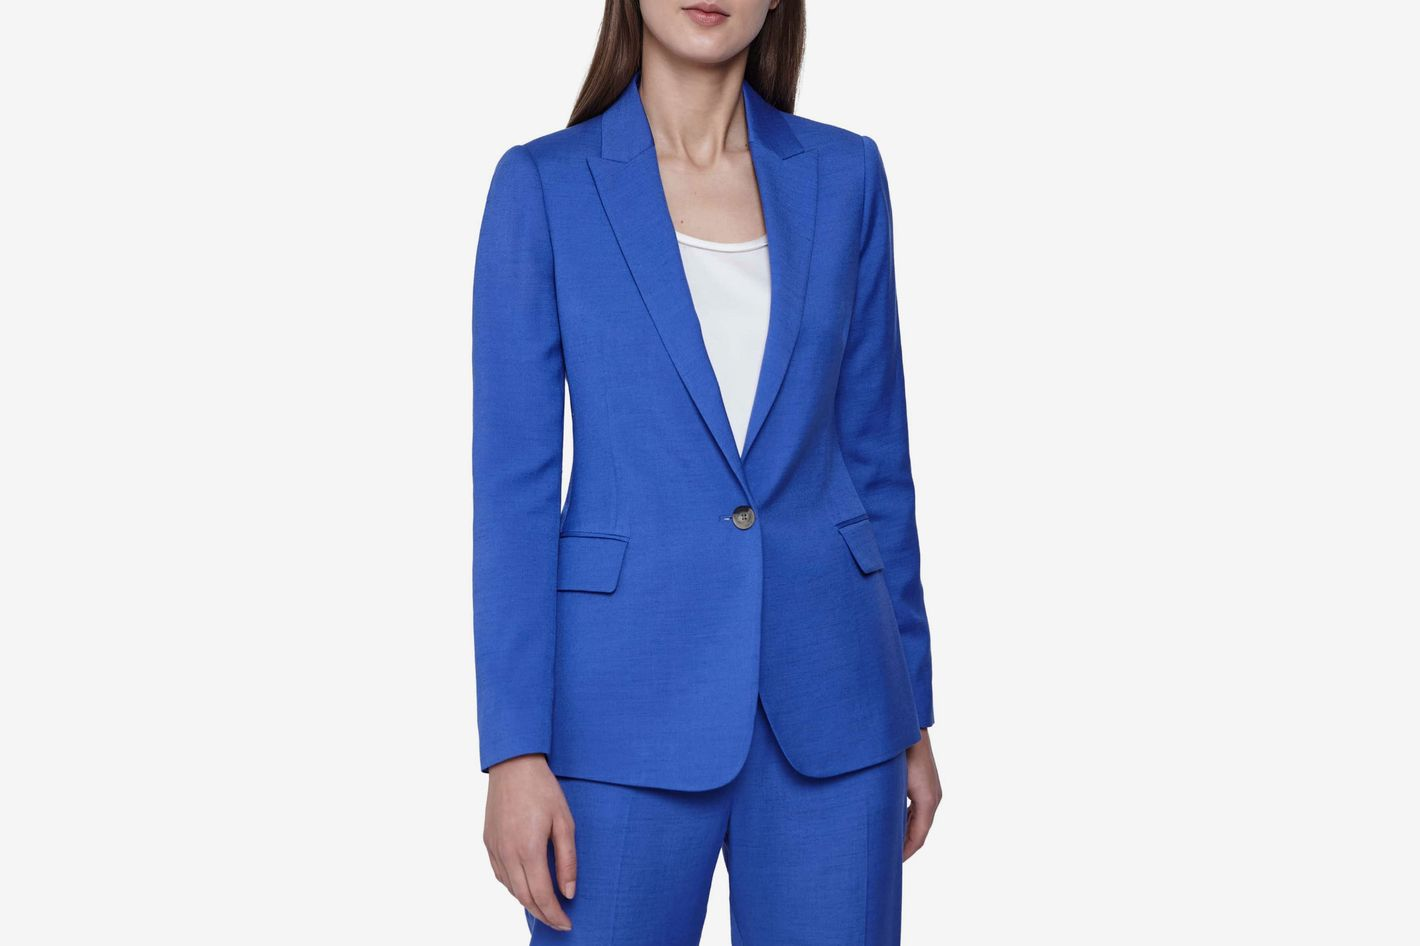 Reiss Haya Slub Texture Suit Jacket